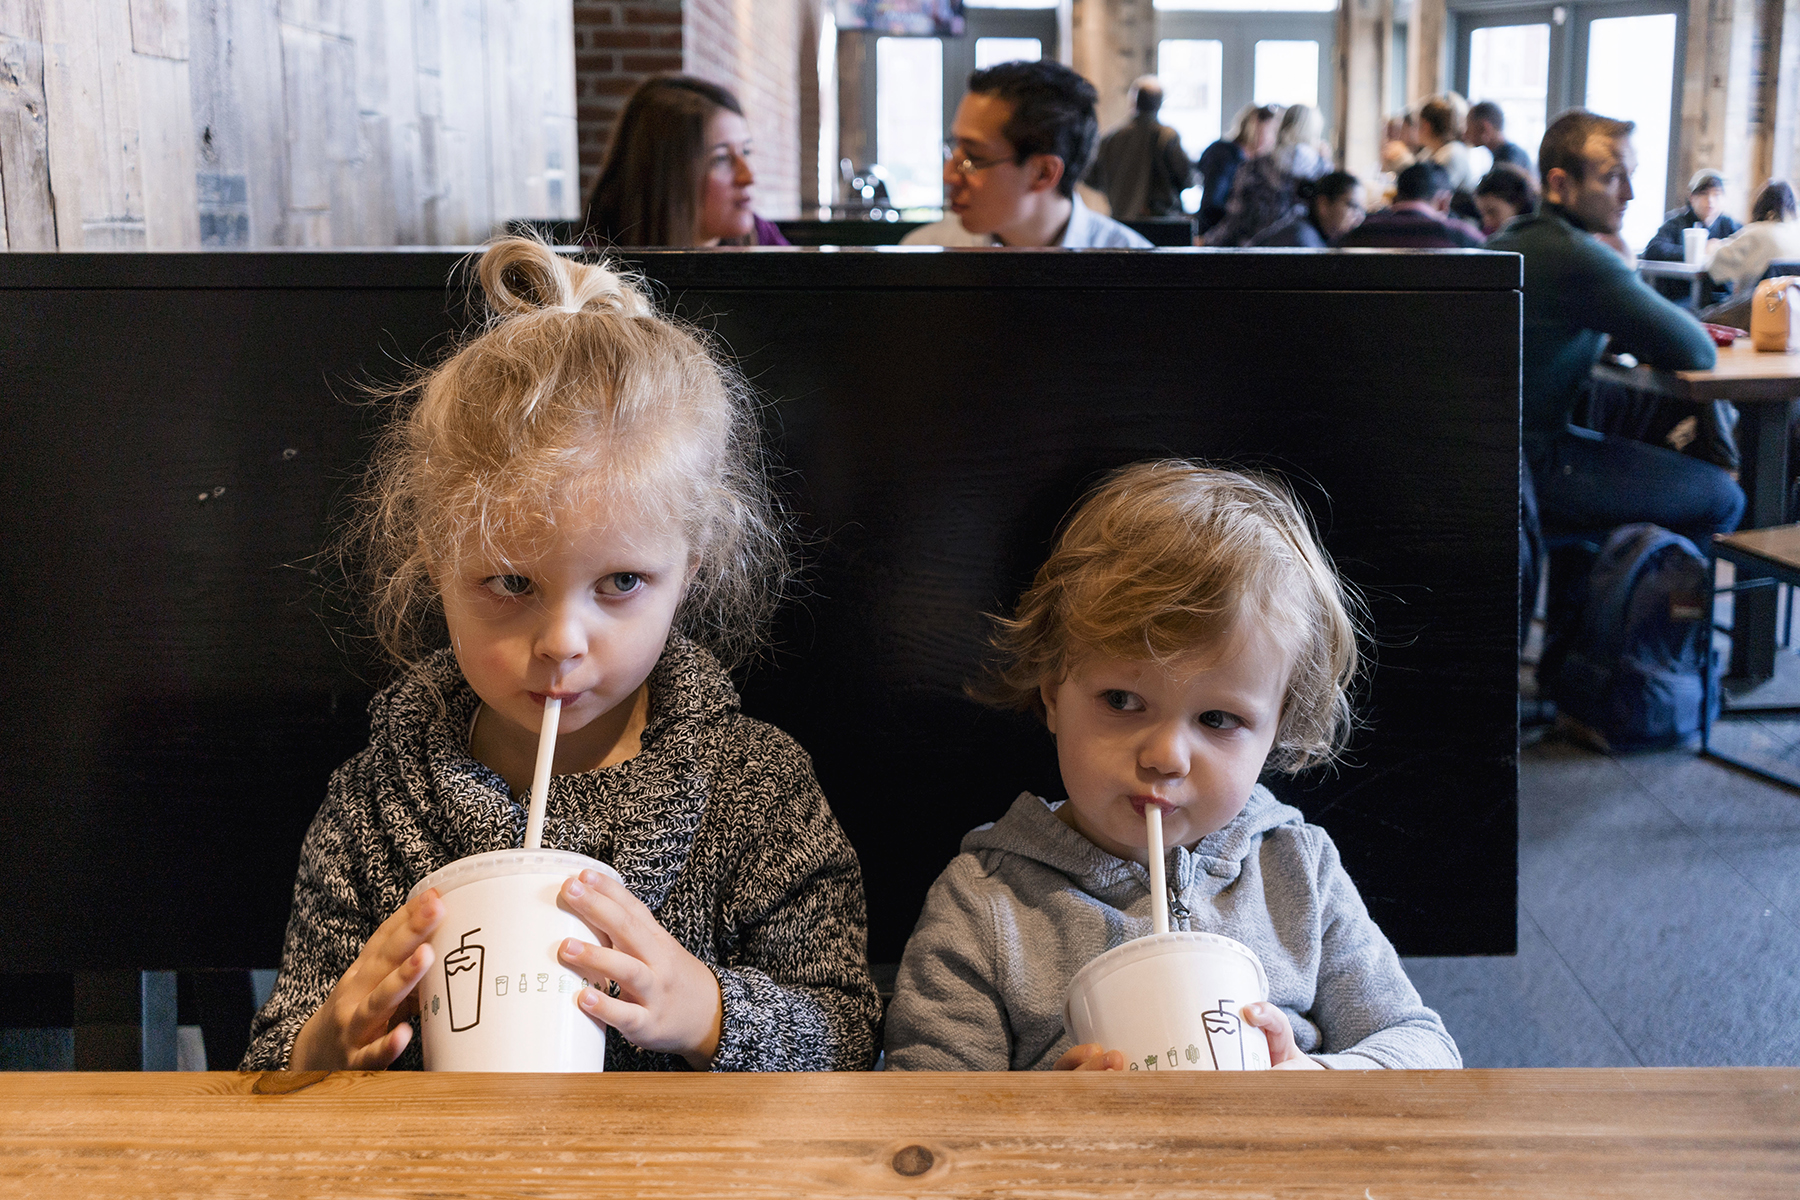 Shake Shack - Top 10 things to do in NYC with young kids | New York City travel guide